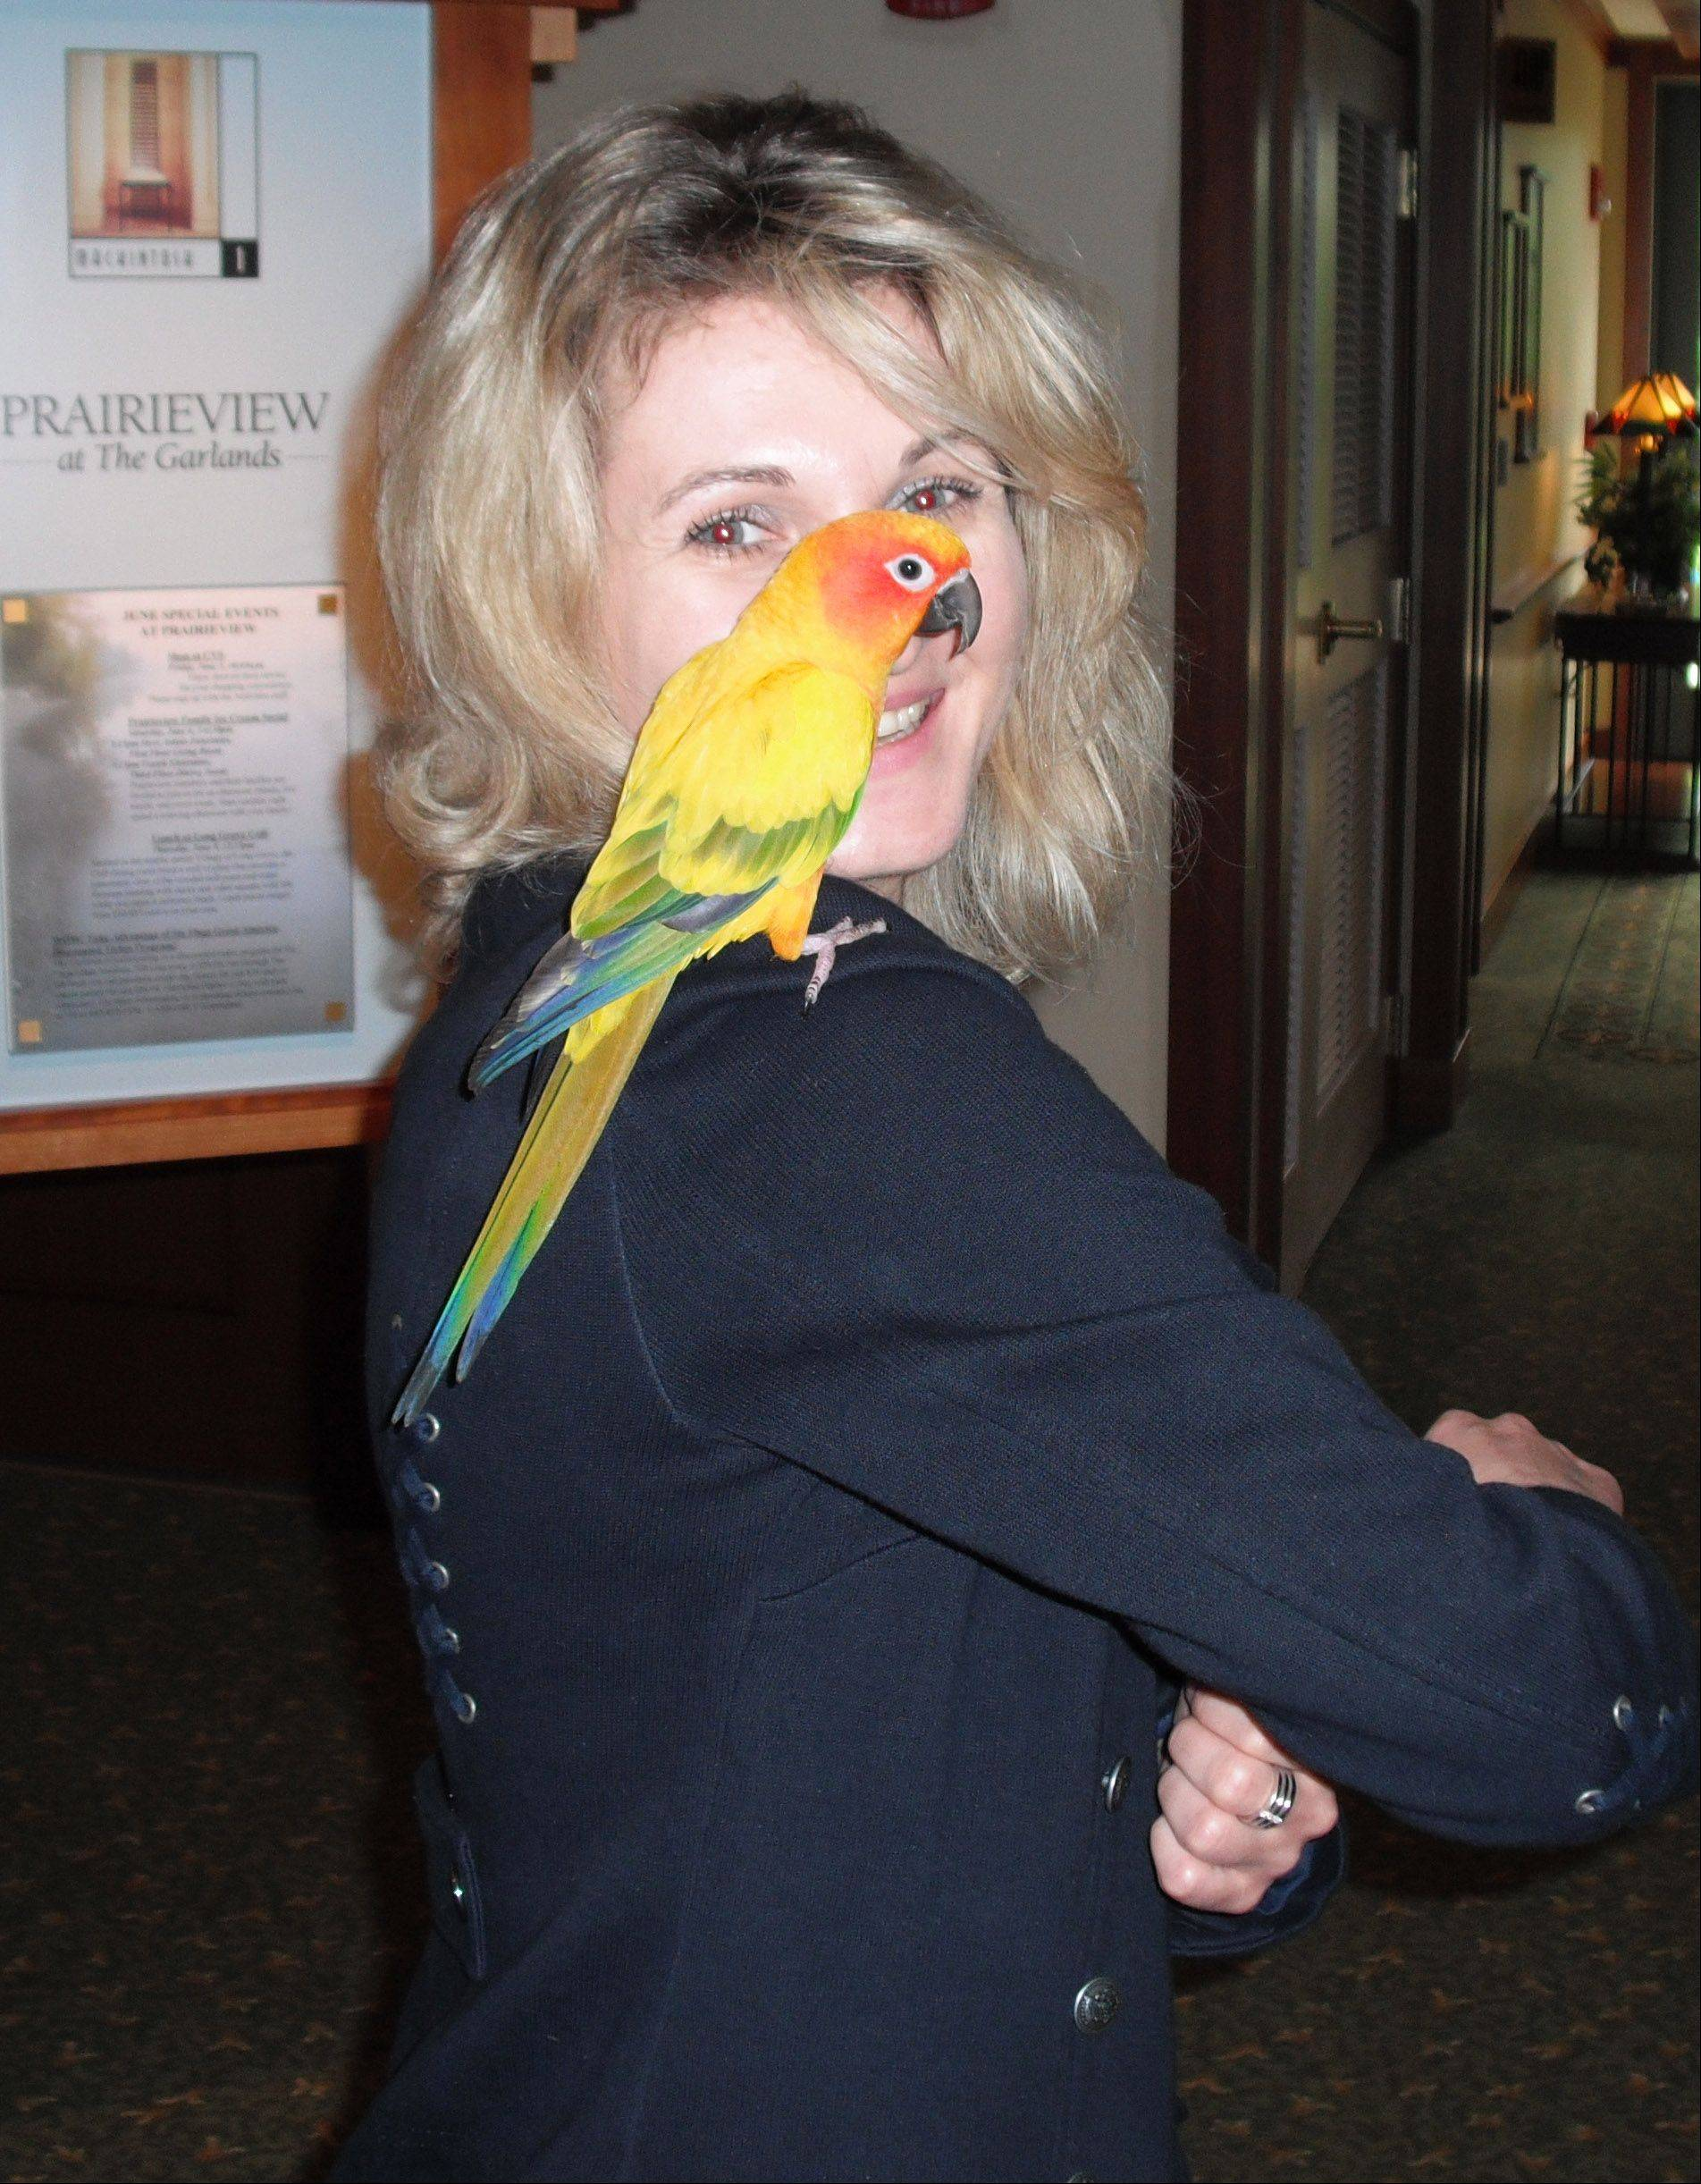 Kasha the parrot was happily reunited with his owner, thanks to the caring members and staff of Prairieview at The Garlands.